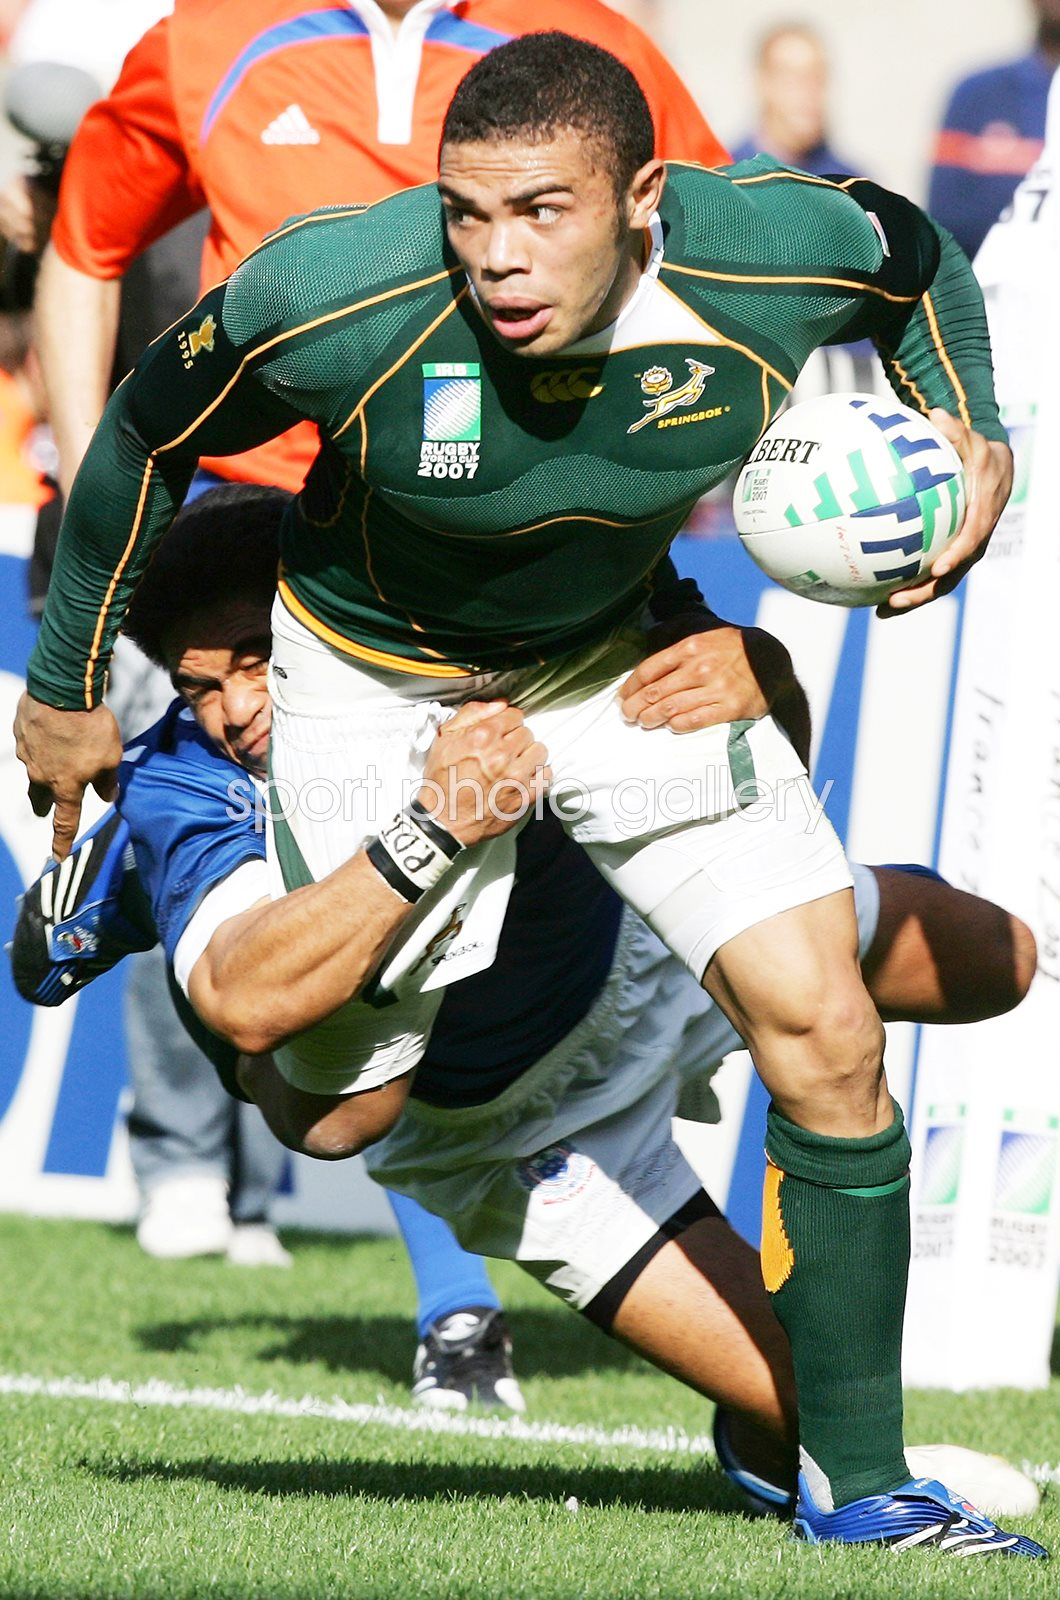 Bryan Habana South Africa Rugby World Cup 2007